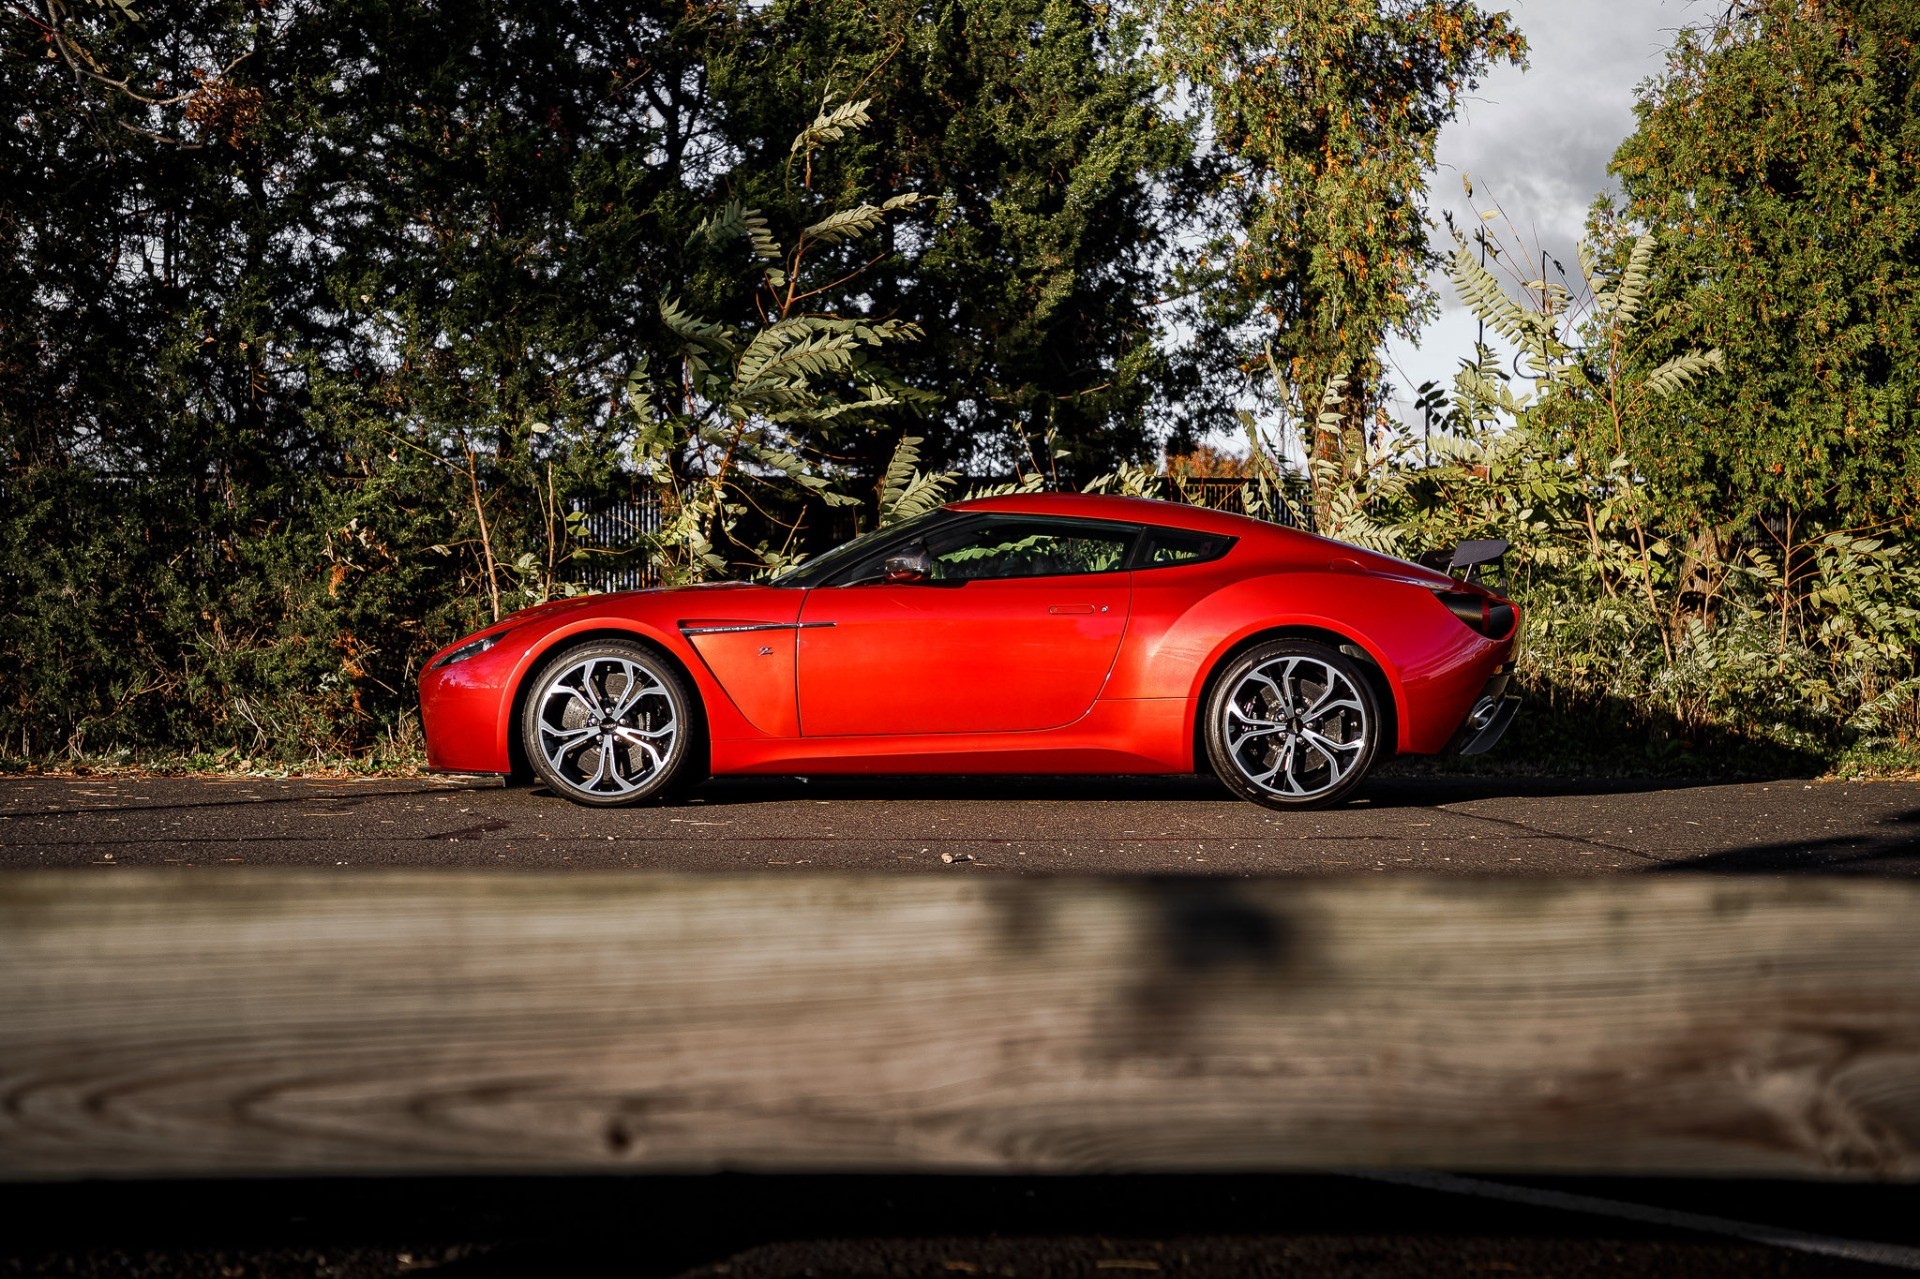 Used 2013 Aston Martin V12 Zagato Coupe For Sale In Westport, CT 3181_p35